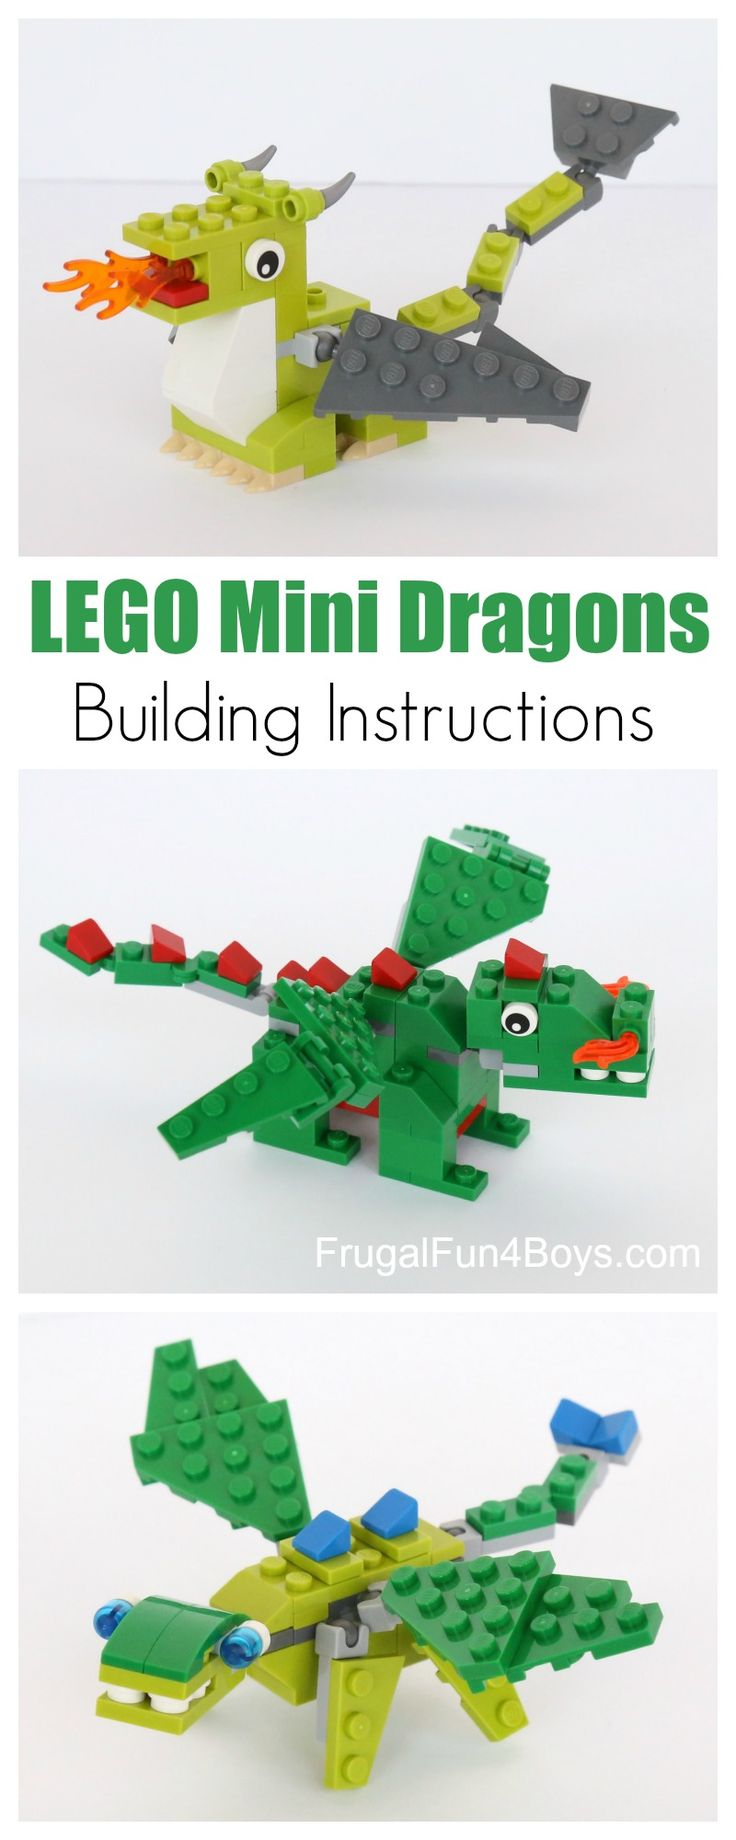 Build some LEGO Mini Dragons – instructions below!  We've got a couple of fire breathing dragons and then a lizard type dragon. Cute and fierce!   After you finish them, build a whole scene with a dragon lair and knights on a quest to seek the treasure – at the risk of their lives! We …